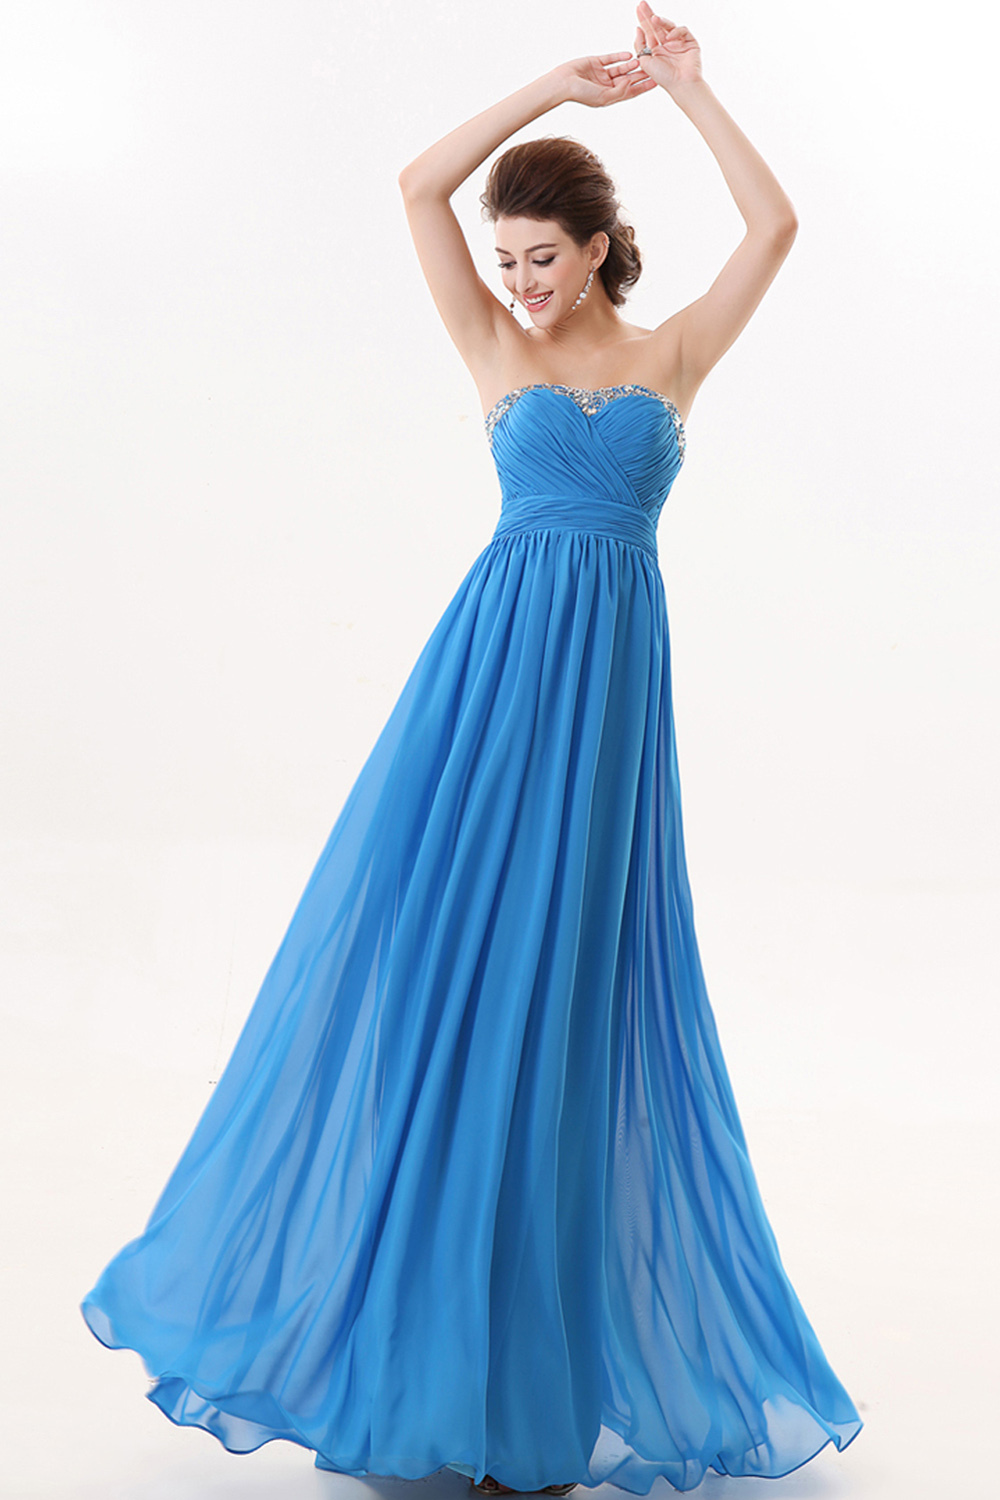 A-Line/Princess Sweetheart Neckline Floor Length Chiffon Prom Dresses with Pleats